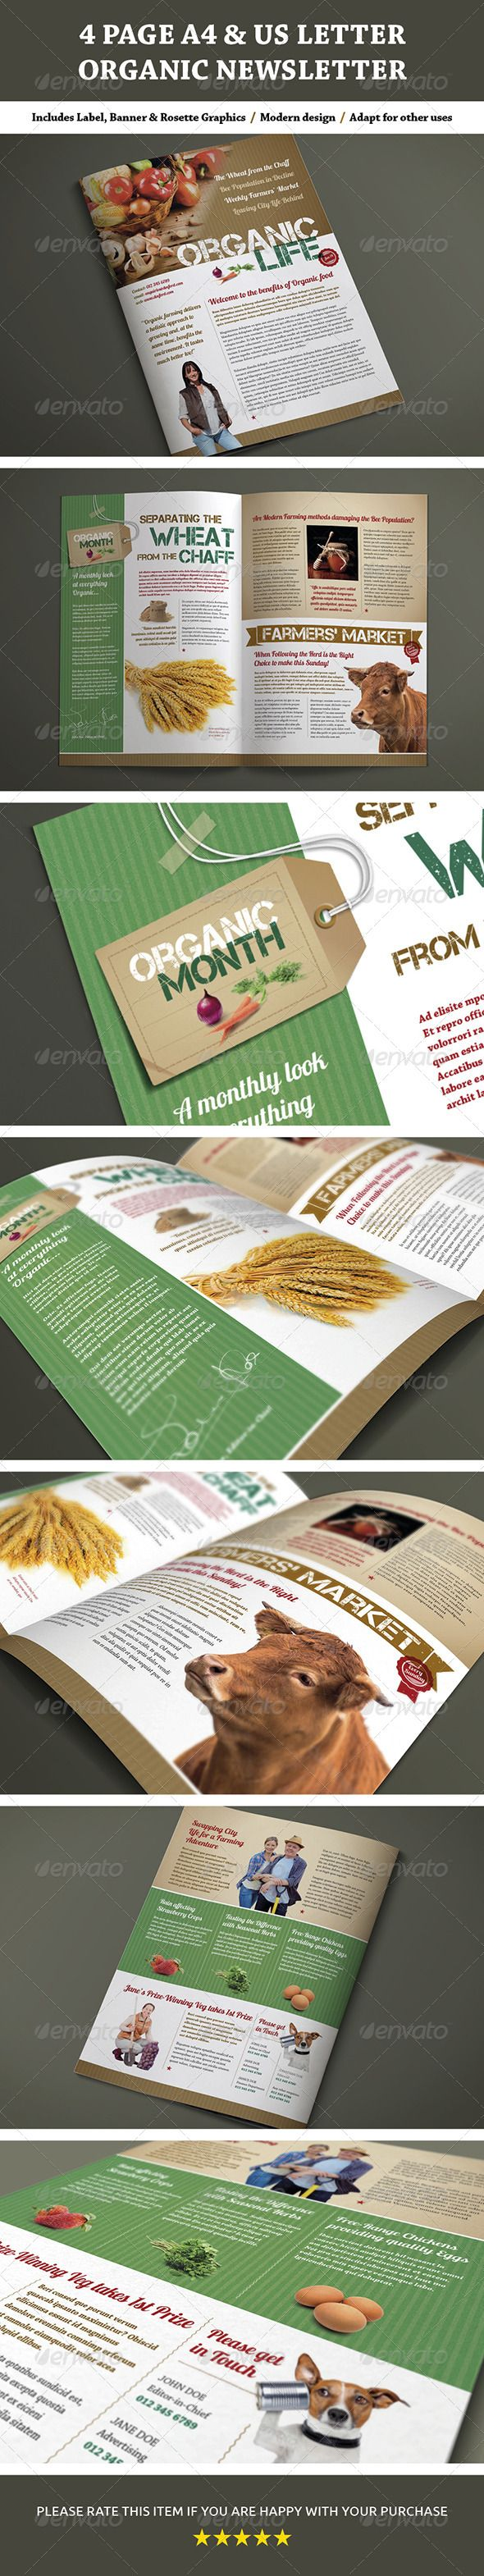 4 Page A4 and US Letter Organic Newsletter - Newsletters Print Templates